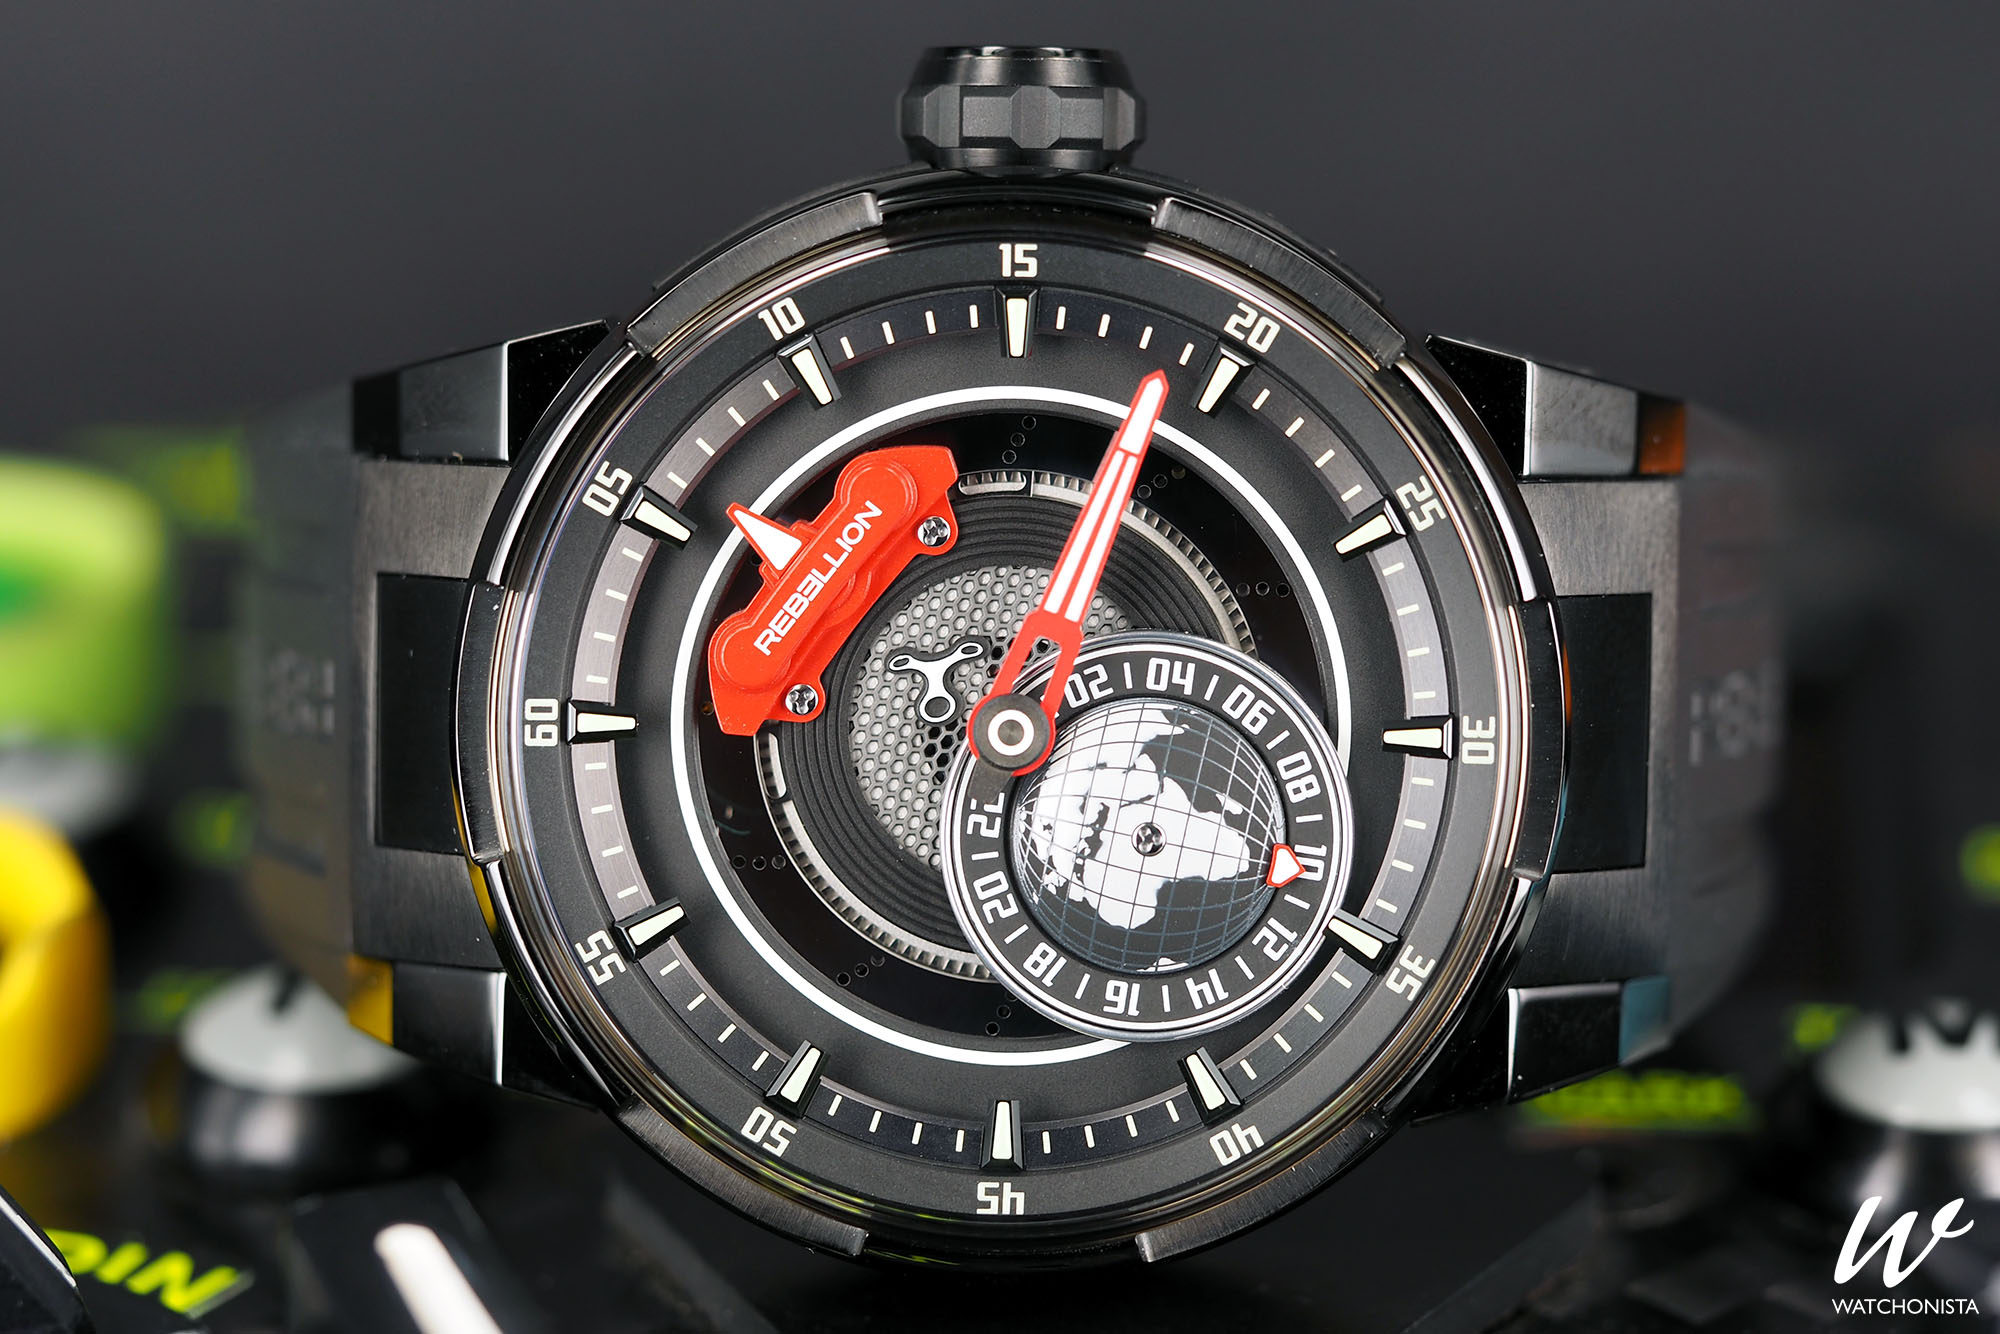 predator power regulator reserve articles rebellion watchonista tourbillon timepieces watches tested you